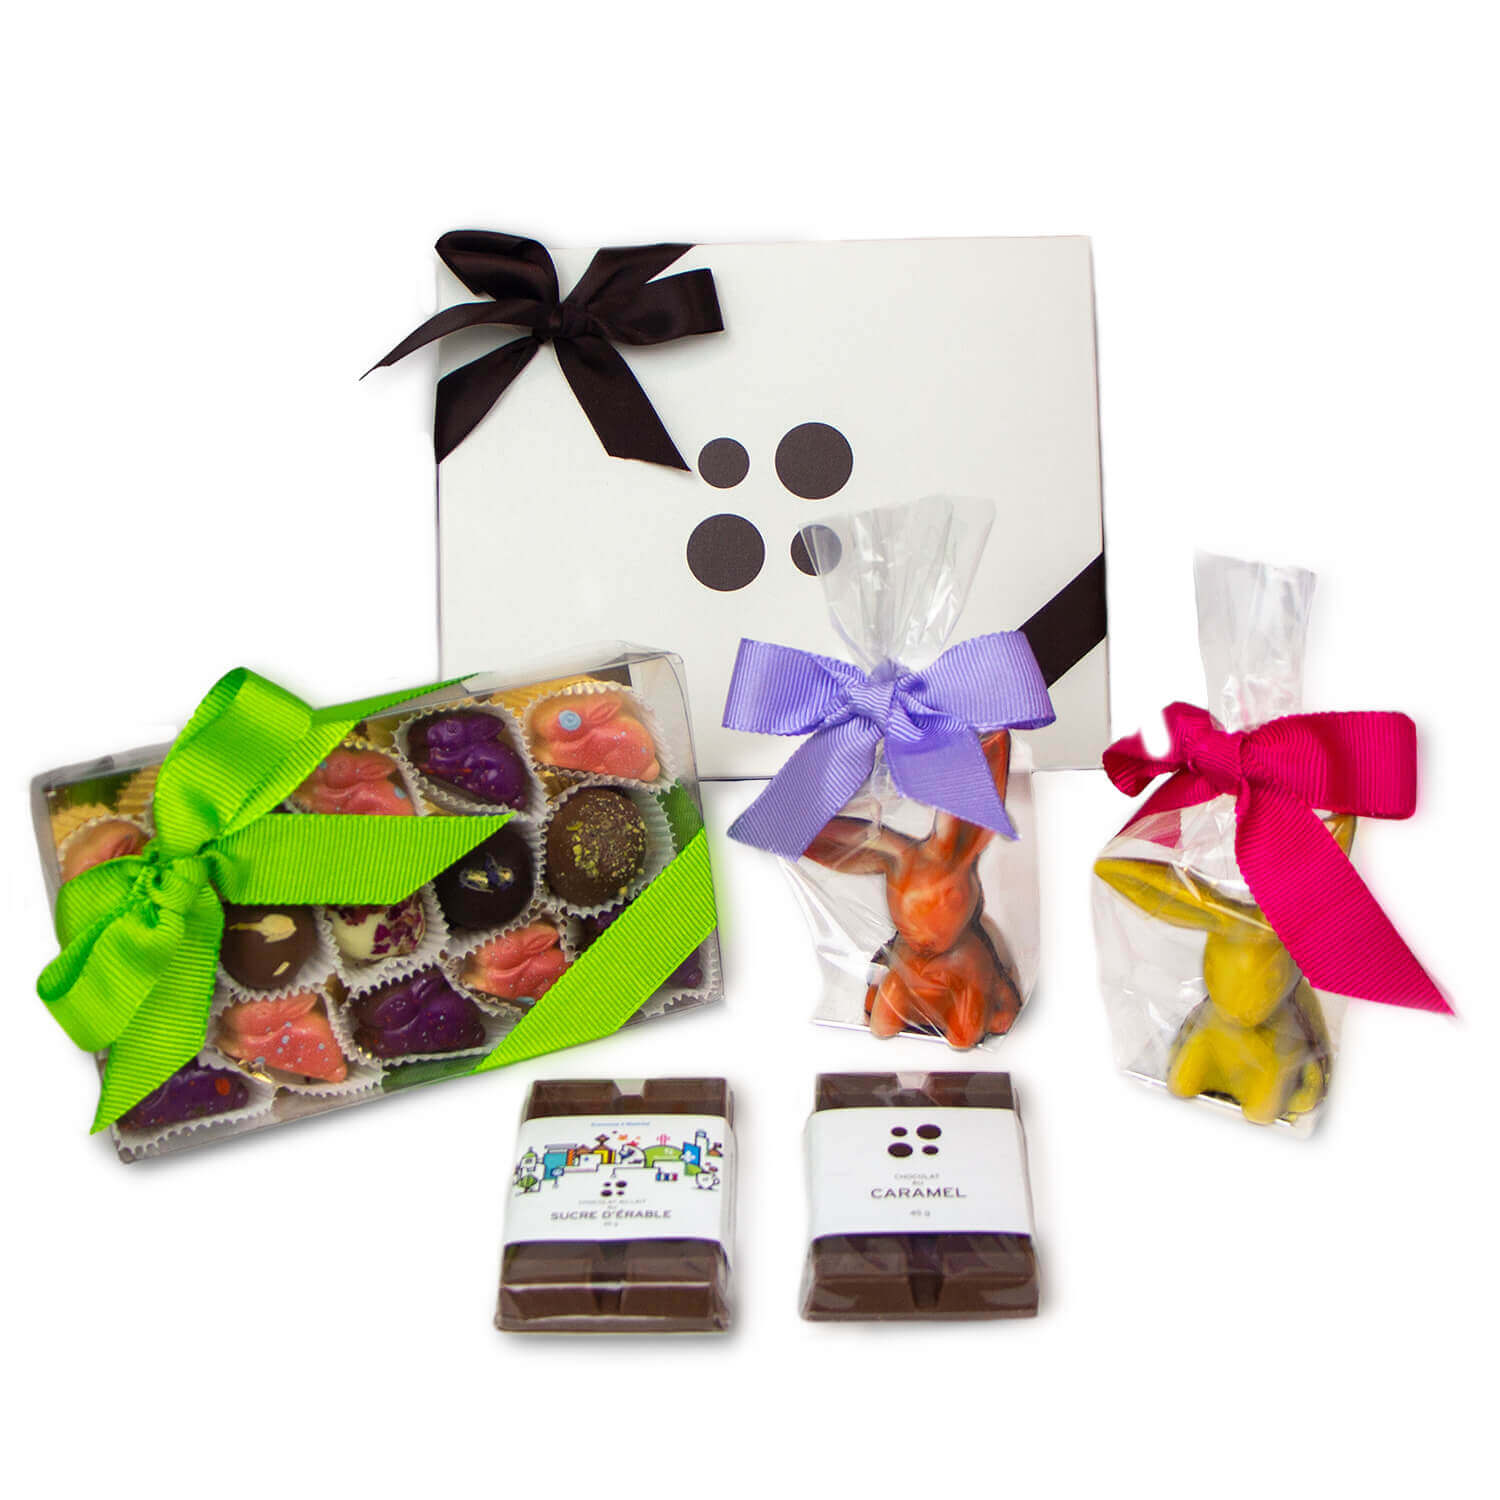 Easter gift box contents